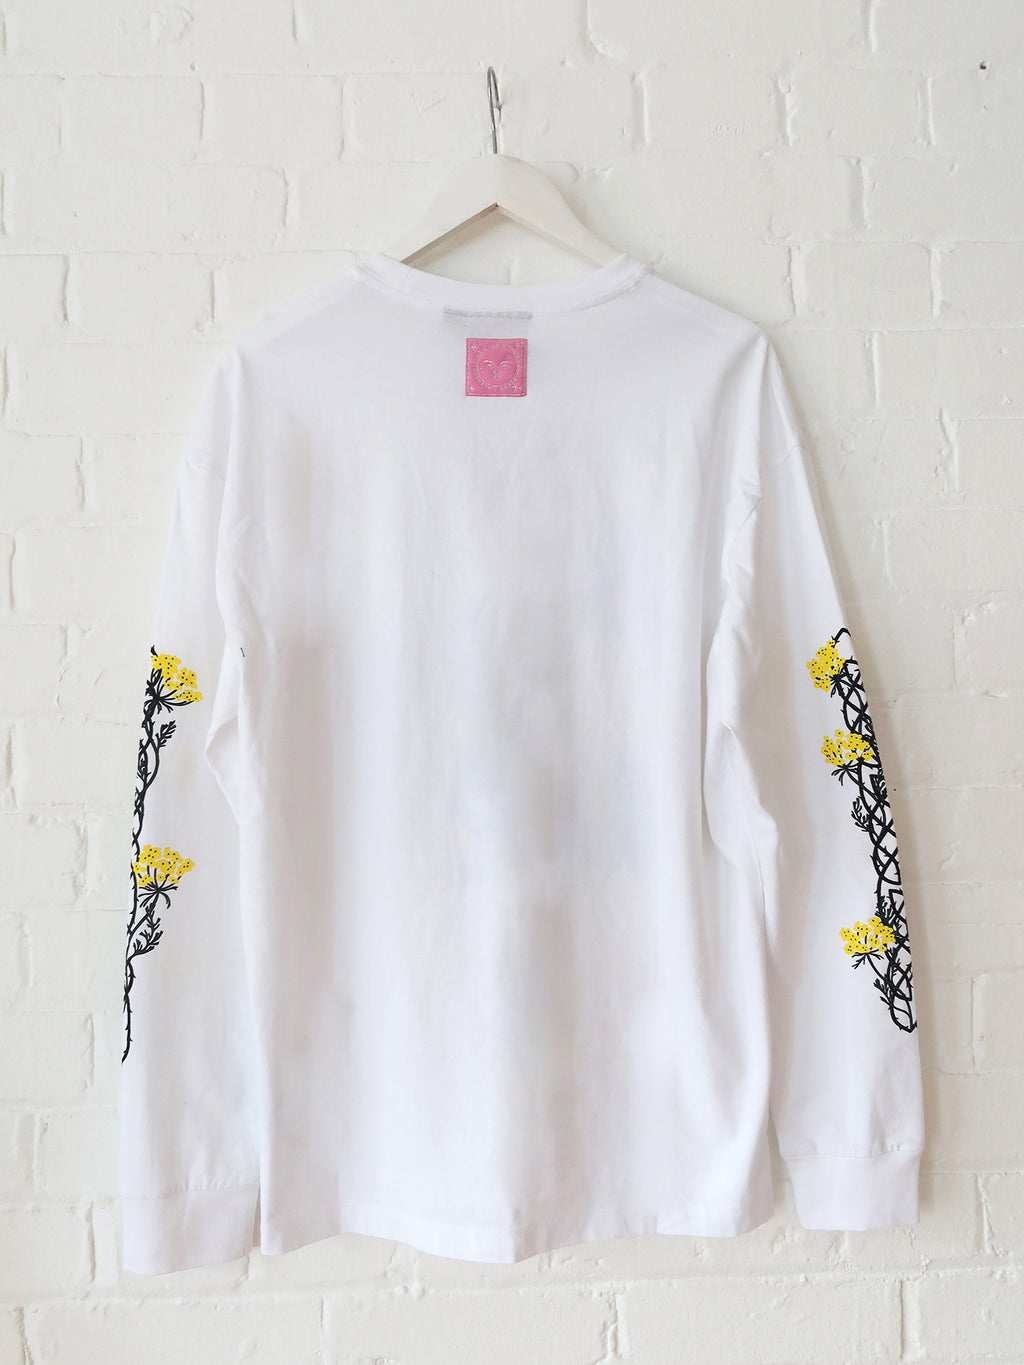 LO x Laura Callaghan Oaf Henge Long Sleeve T-Shirt